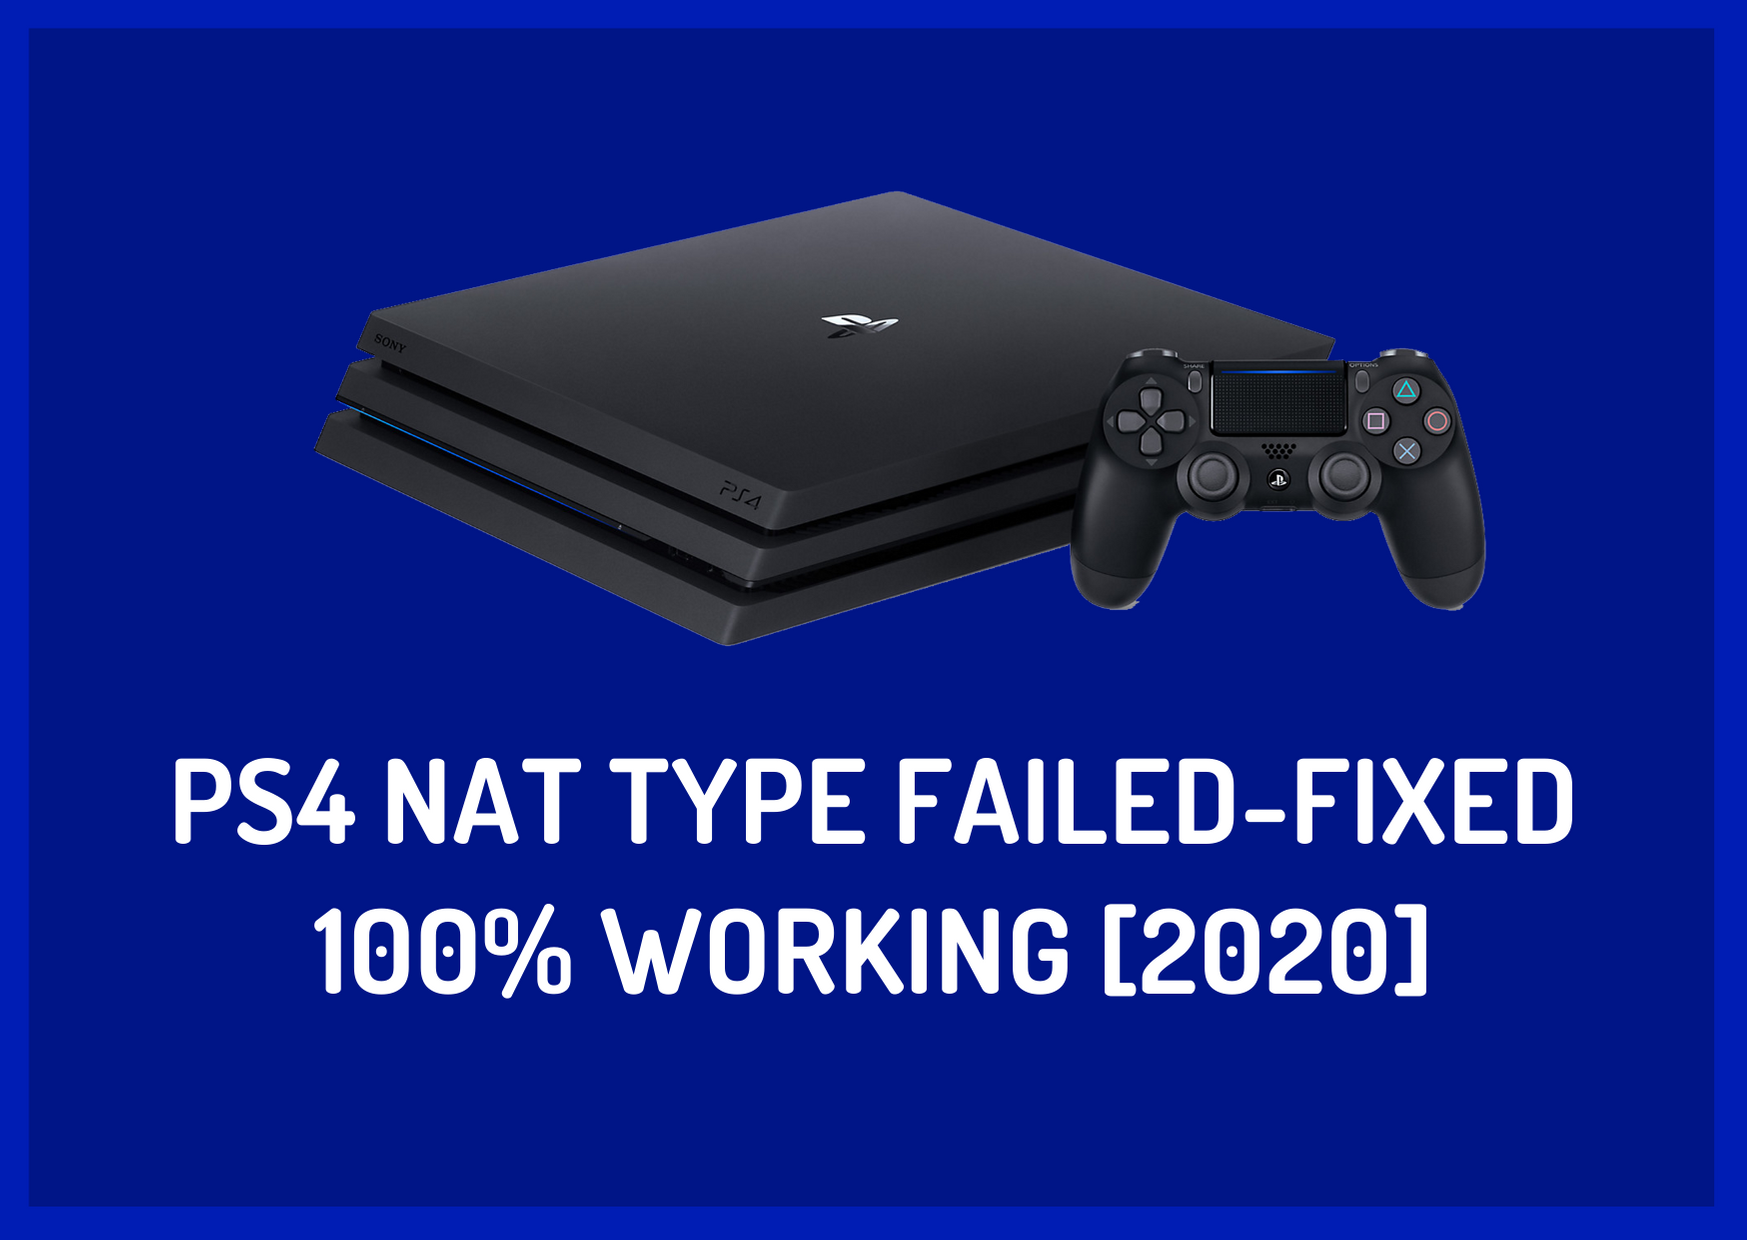 ps4 nat type failed